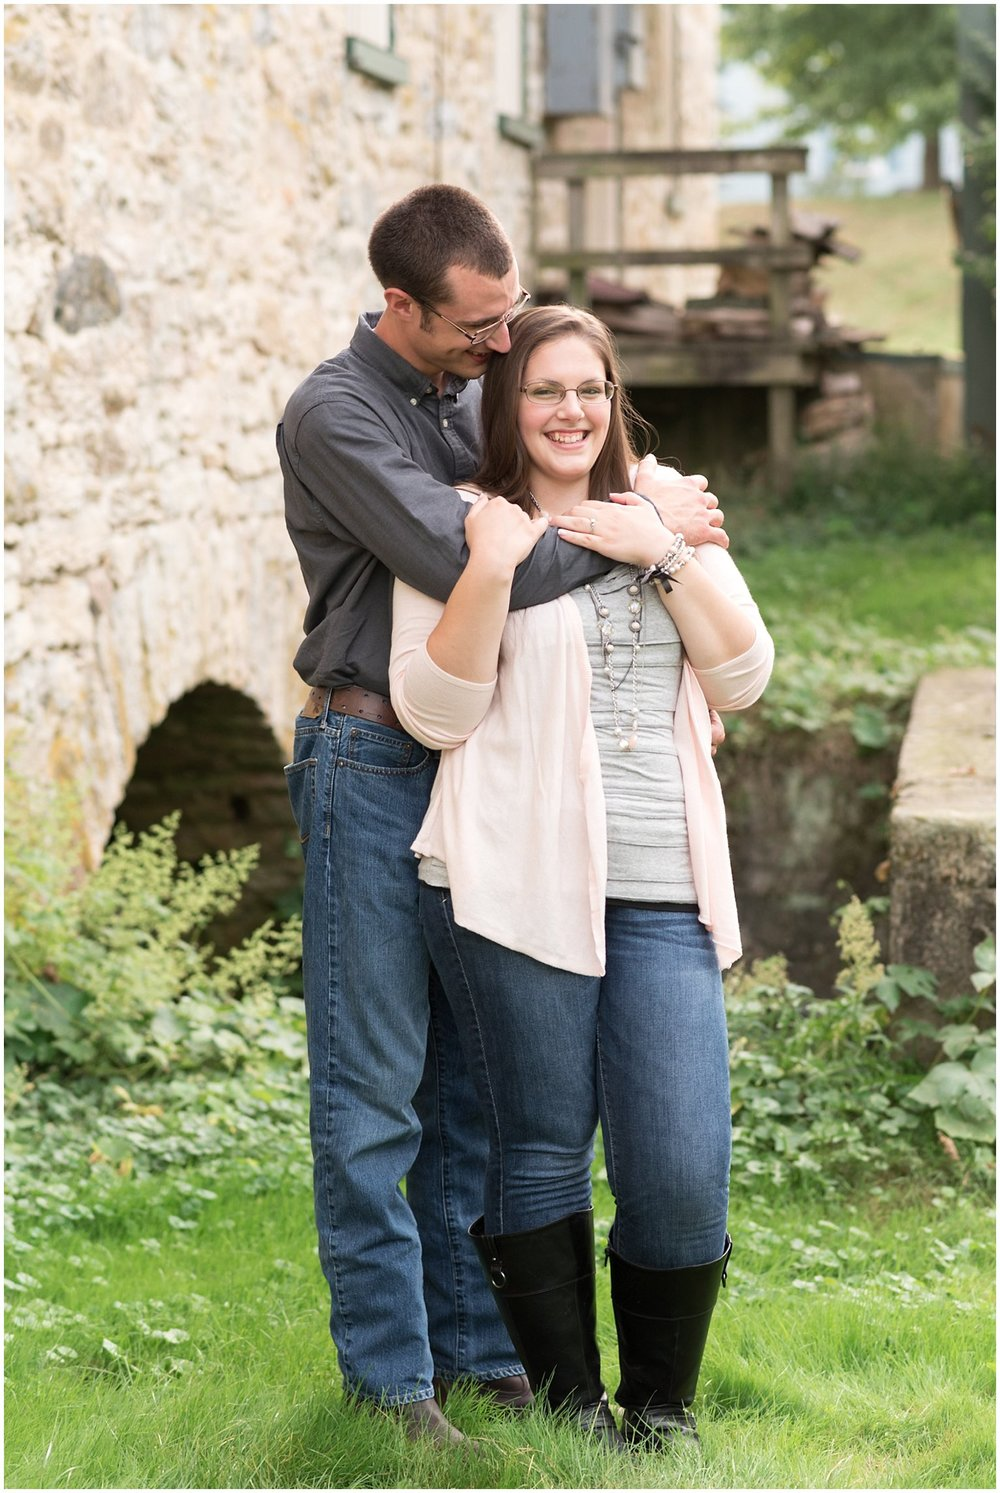 willow-tree-lancaster-pa-lancaster-county-wedding-photography-photographer-engagement-photo